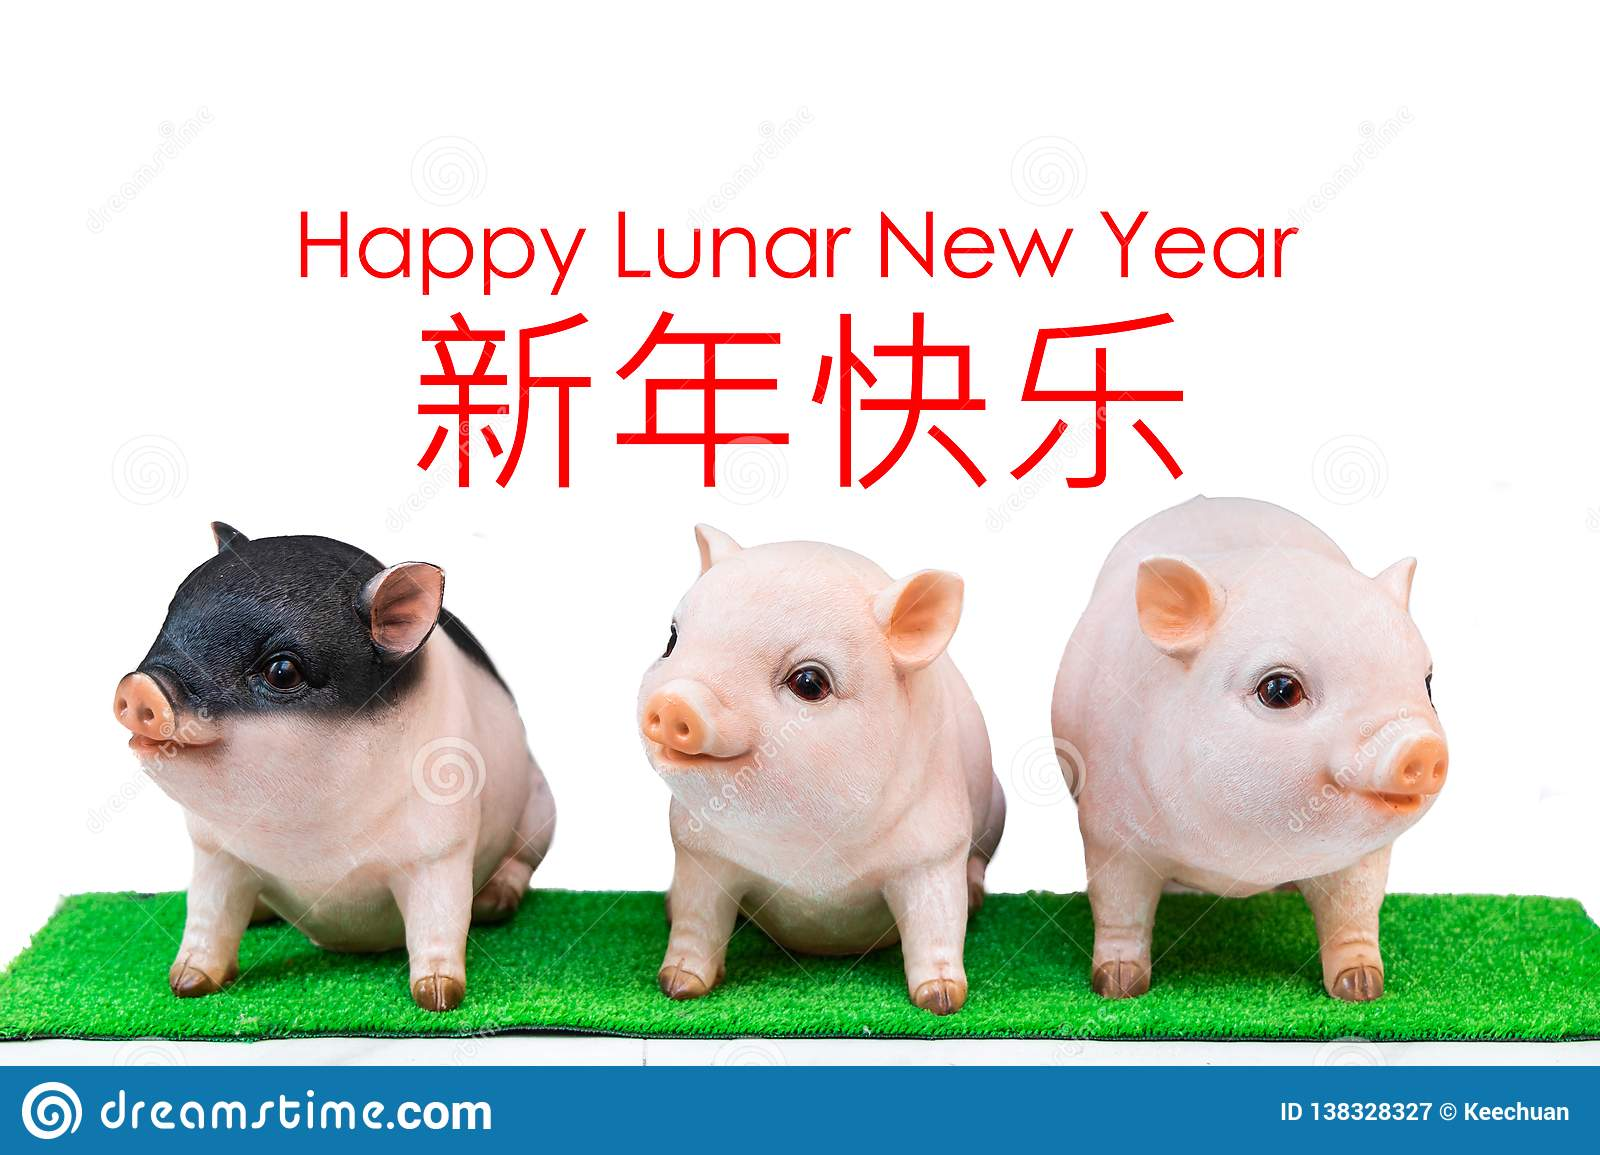 Three pig boar in white background with Happy Lunar New Year greeting text. Pig is 2019 Chinese New Year zodiac